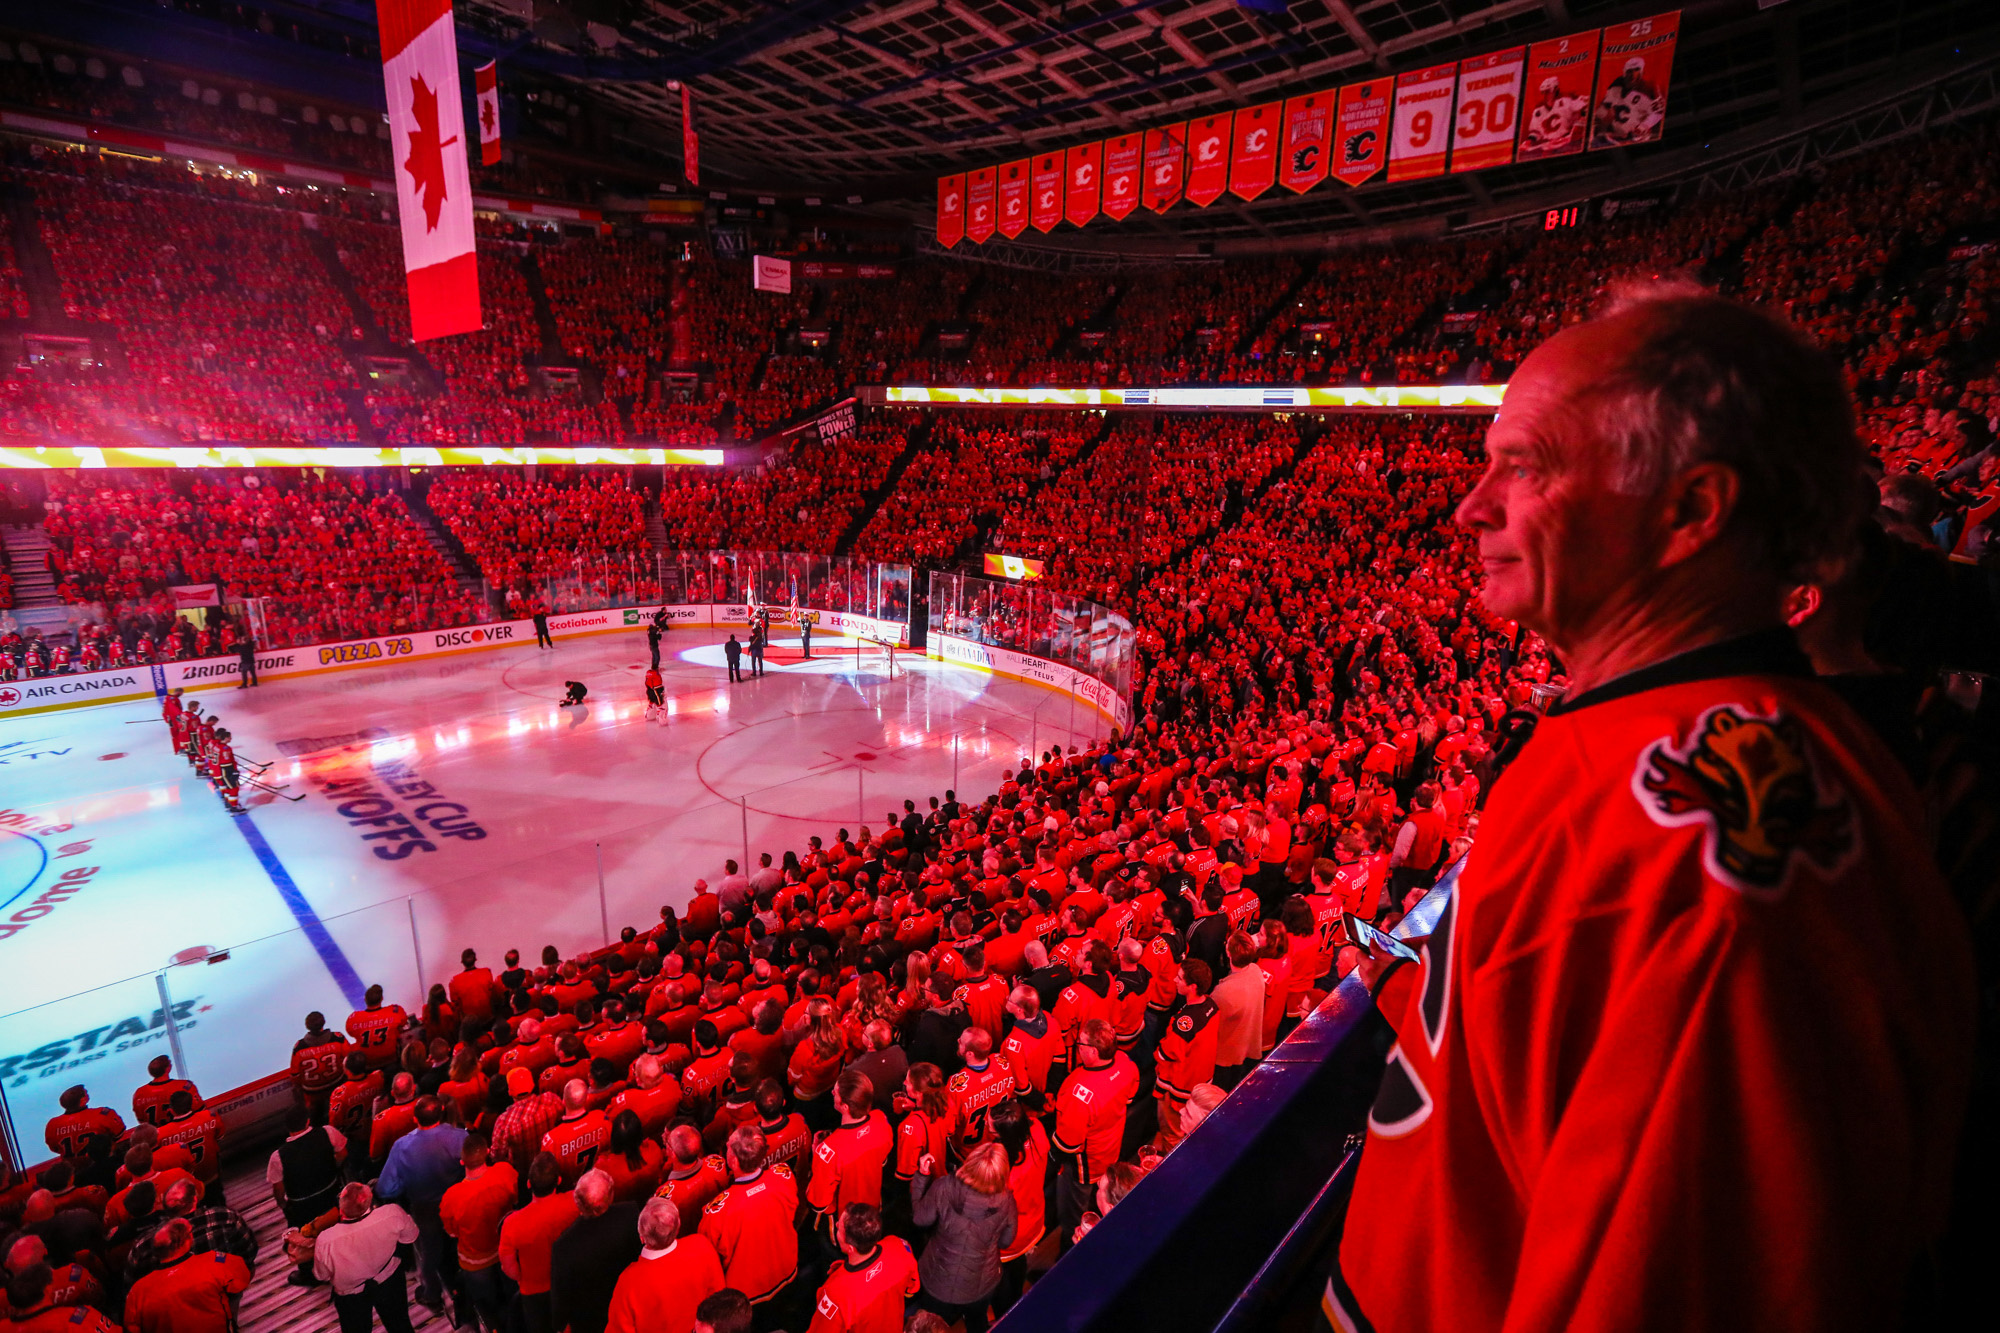 10034008-nhl-stanley-cup-playoffs-anaheim-ducks-at-calgary-flames